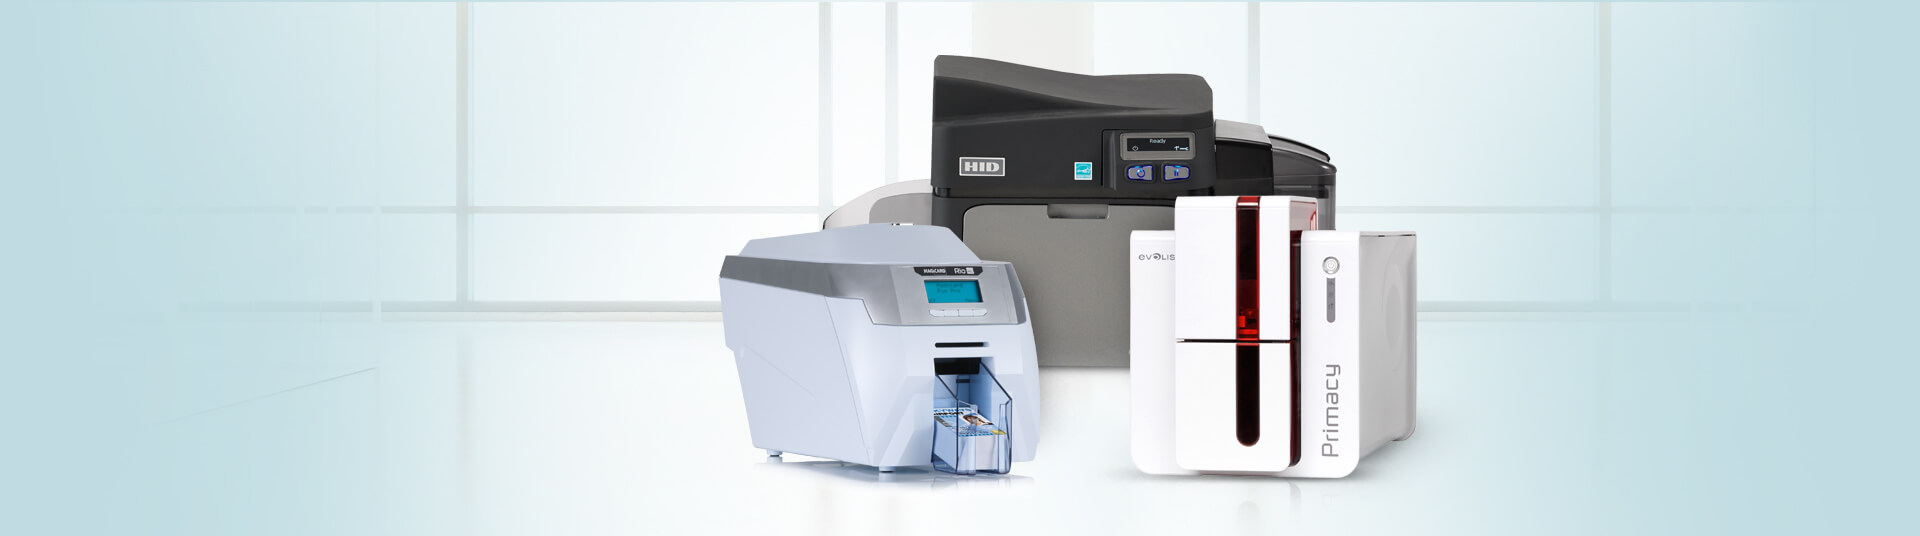 Standard Picture ID Machines